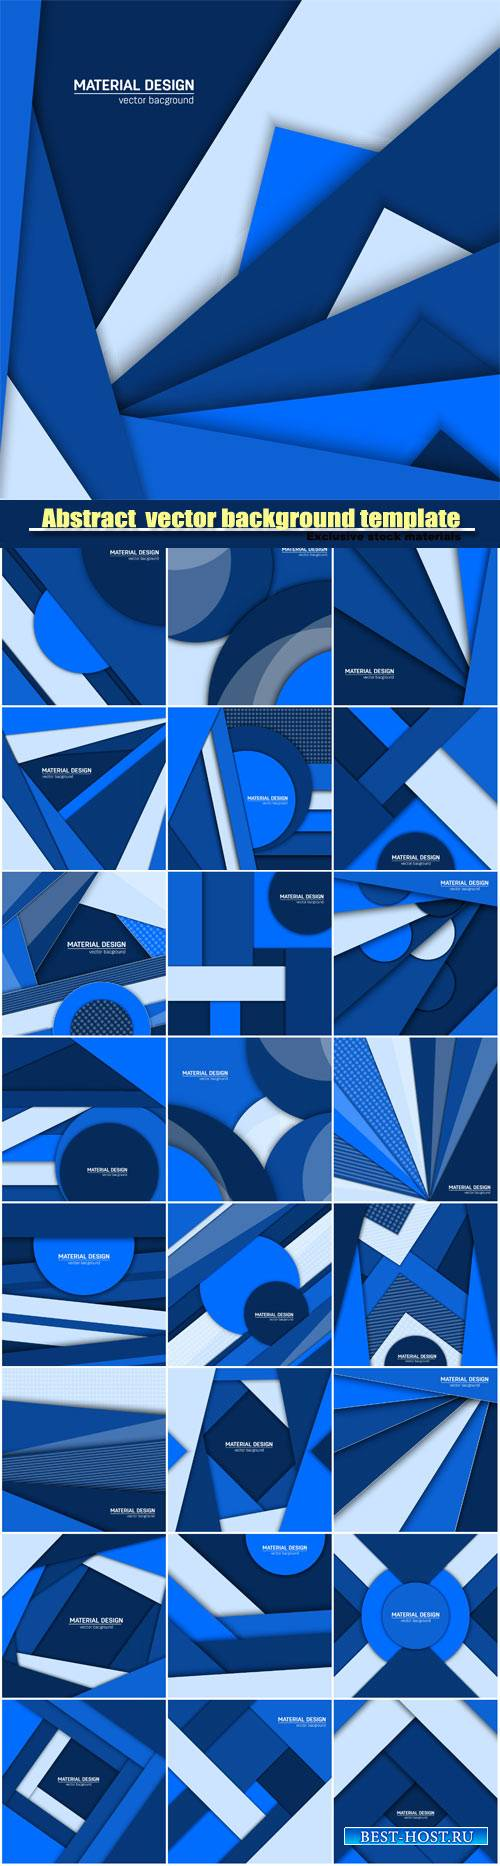 Abstract creative layout vector background template